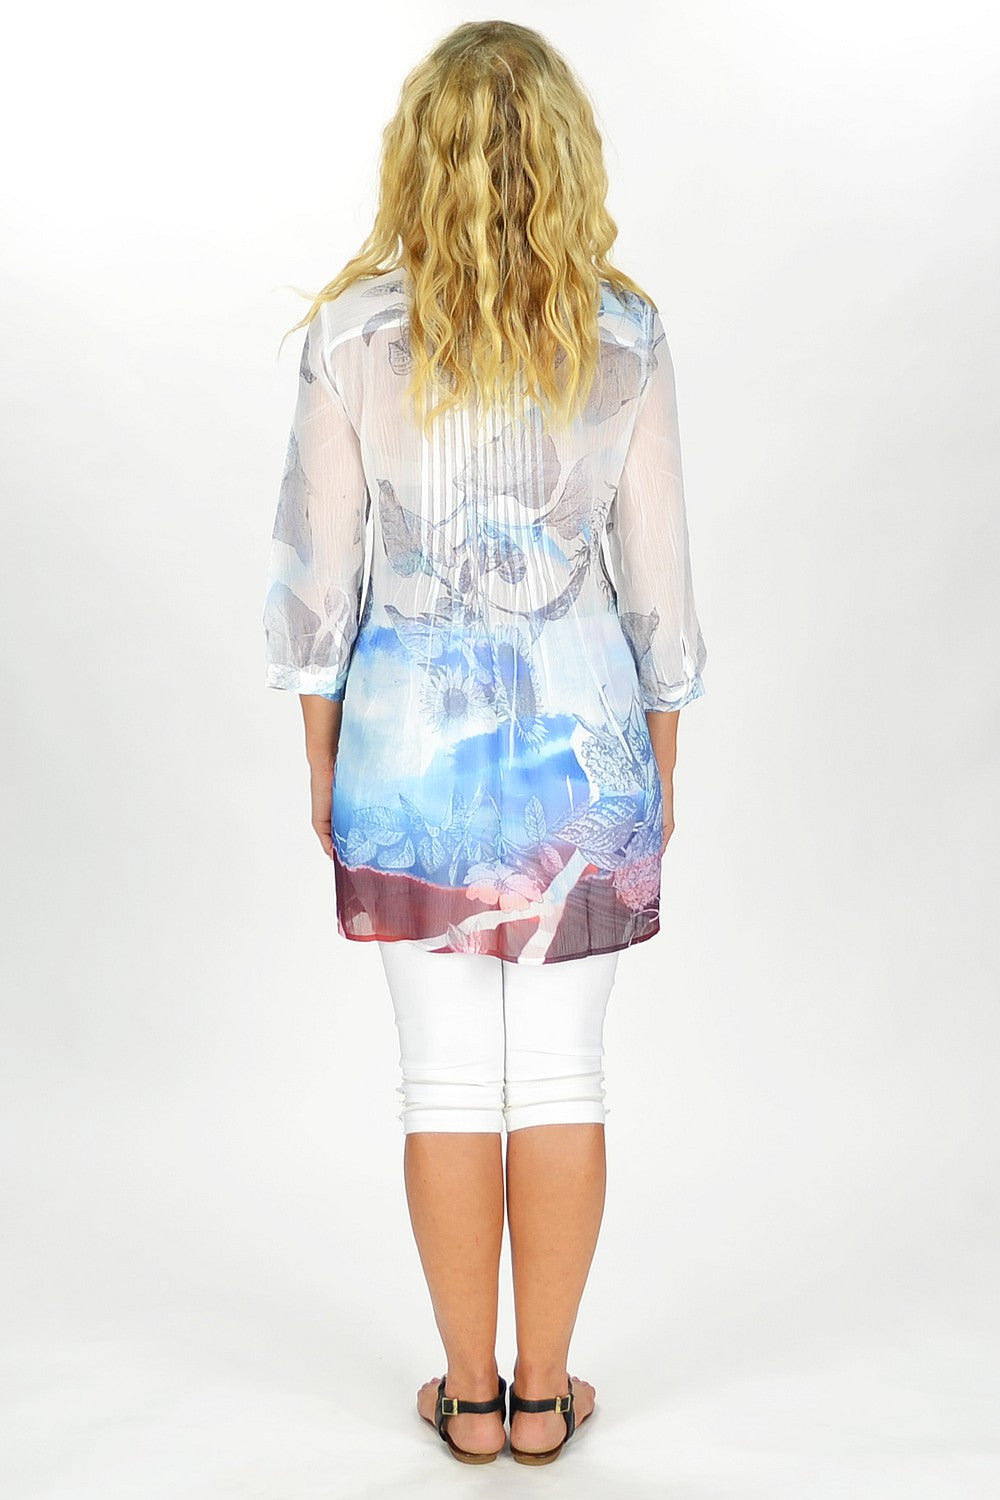 Blue Sun Flower Tunic - at I Love Tunics @ www.ilovetunics.com = Number One! Tunics Destination